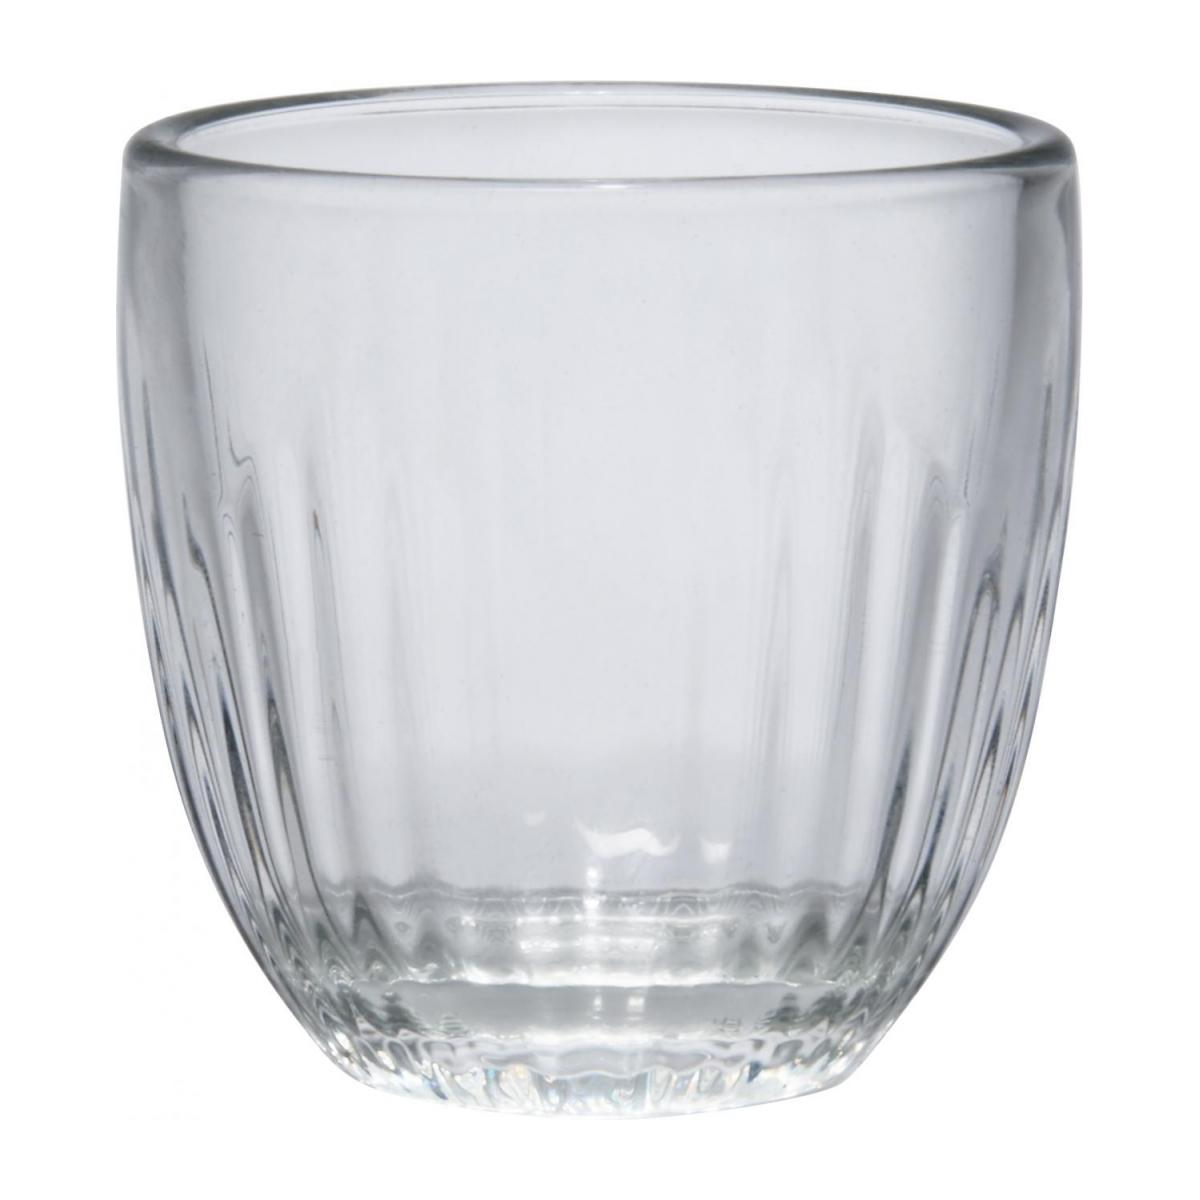 Expresso cup made of glass with layers n°1